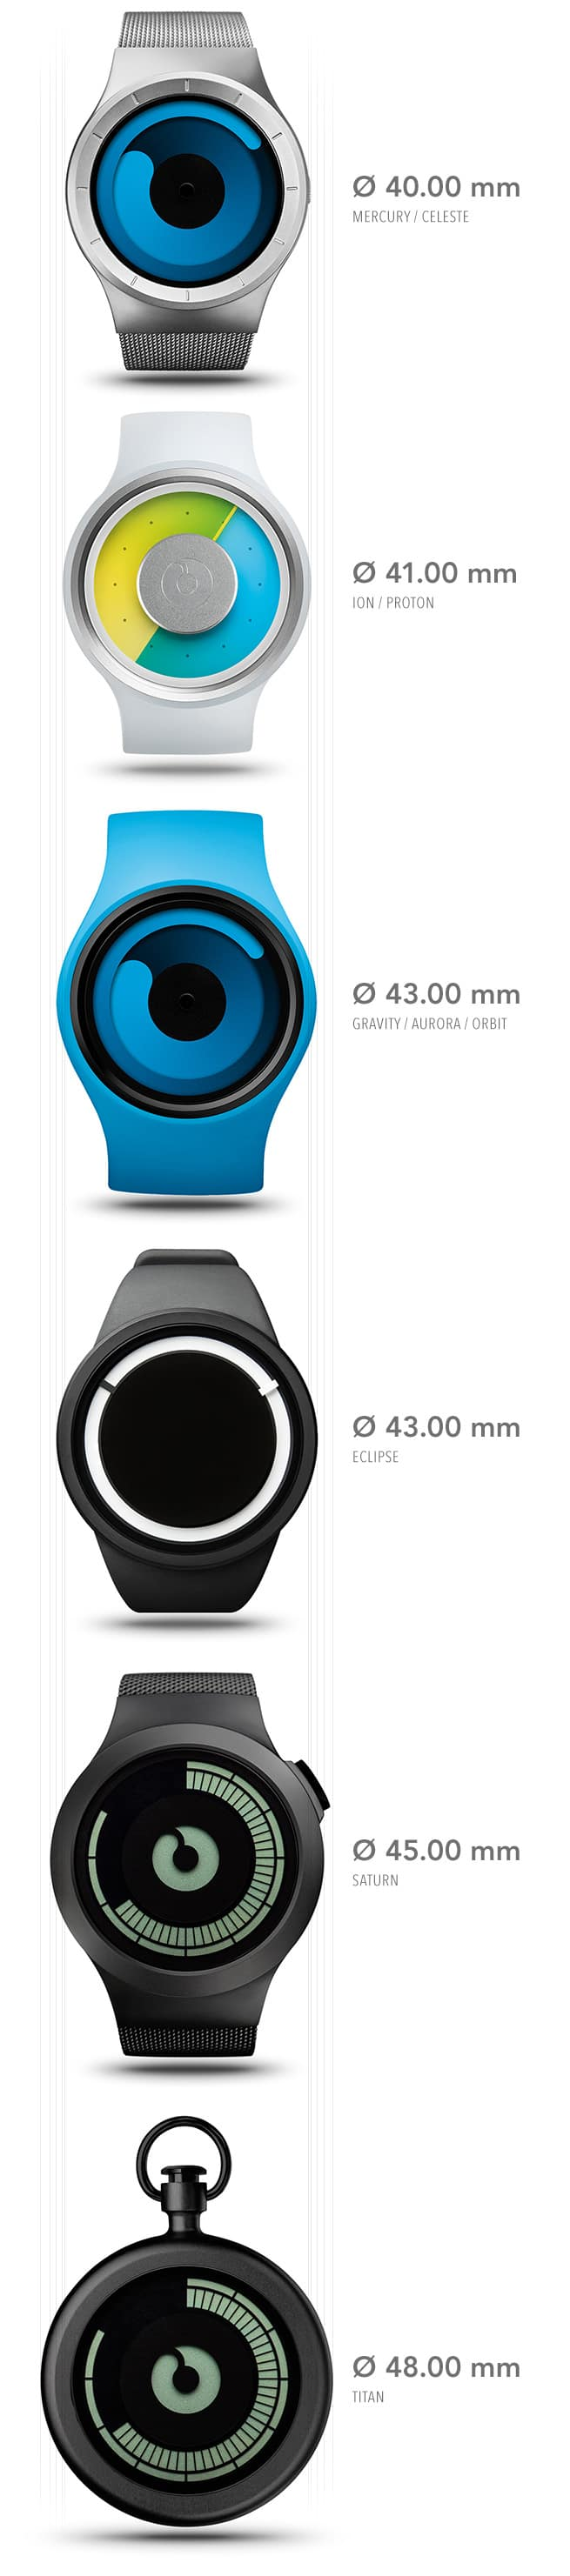 ZIIIRO Watch Sizes Casing